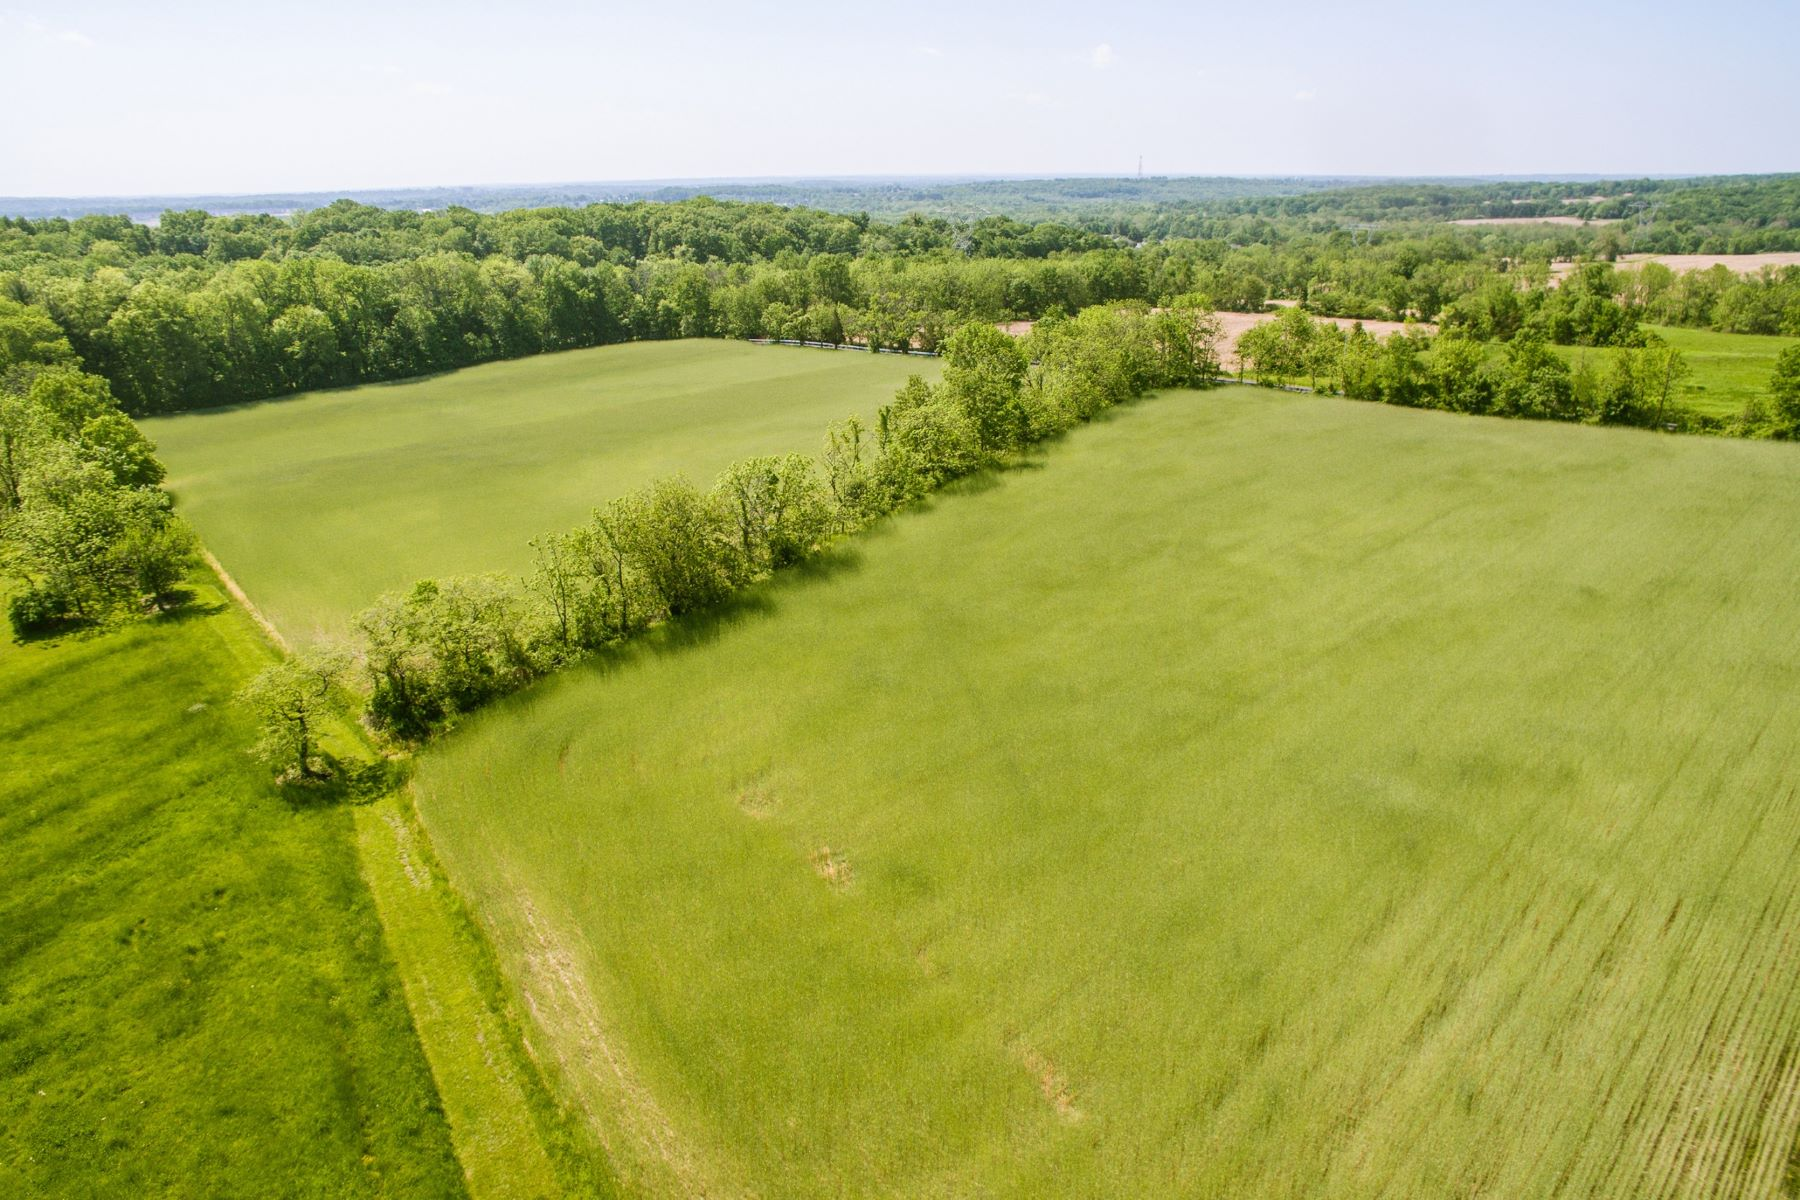 Land for Sale at West Wind Farm 5839 WORTHINGTON RD Doylestown, 18901 United States